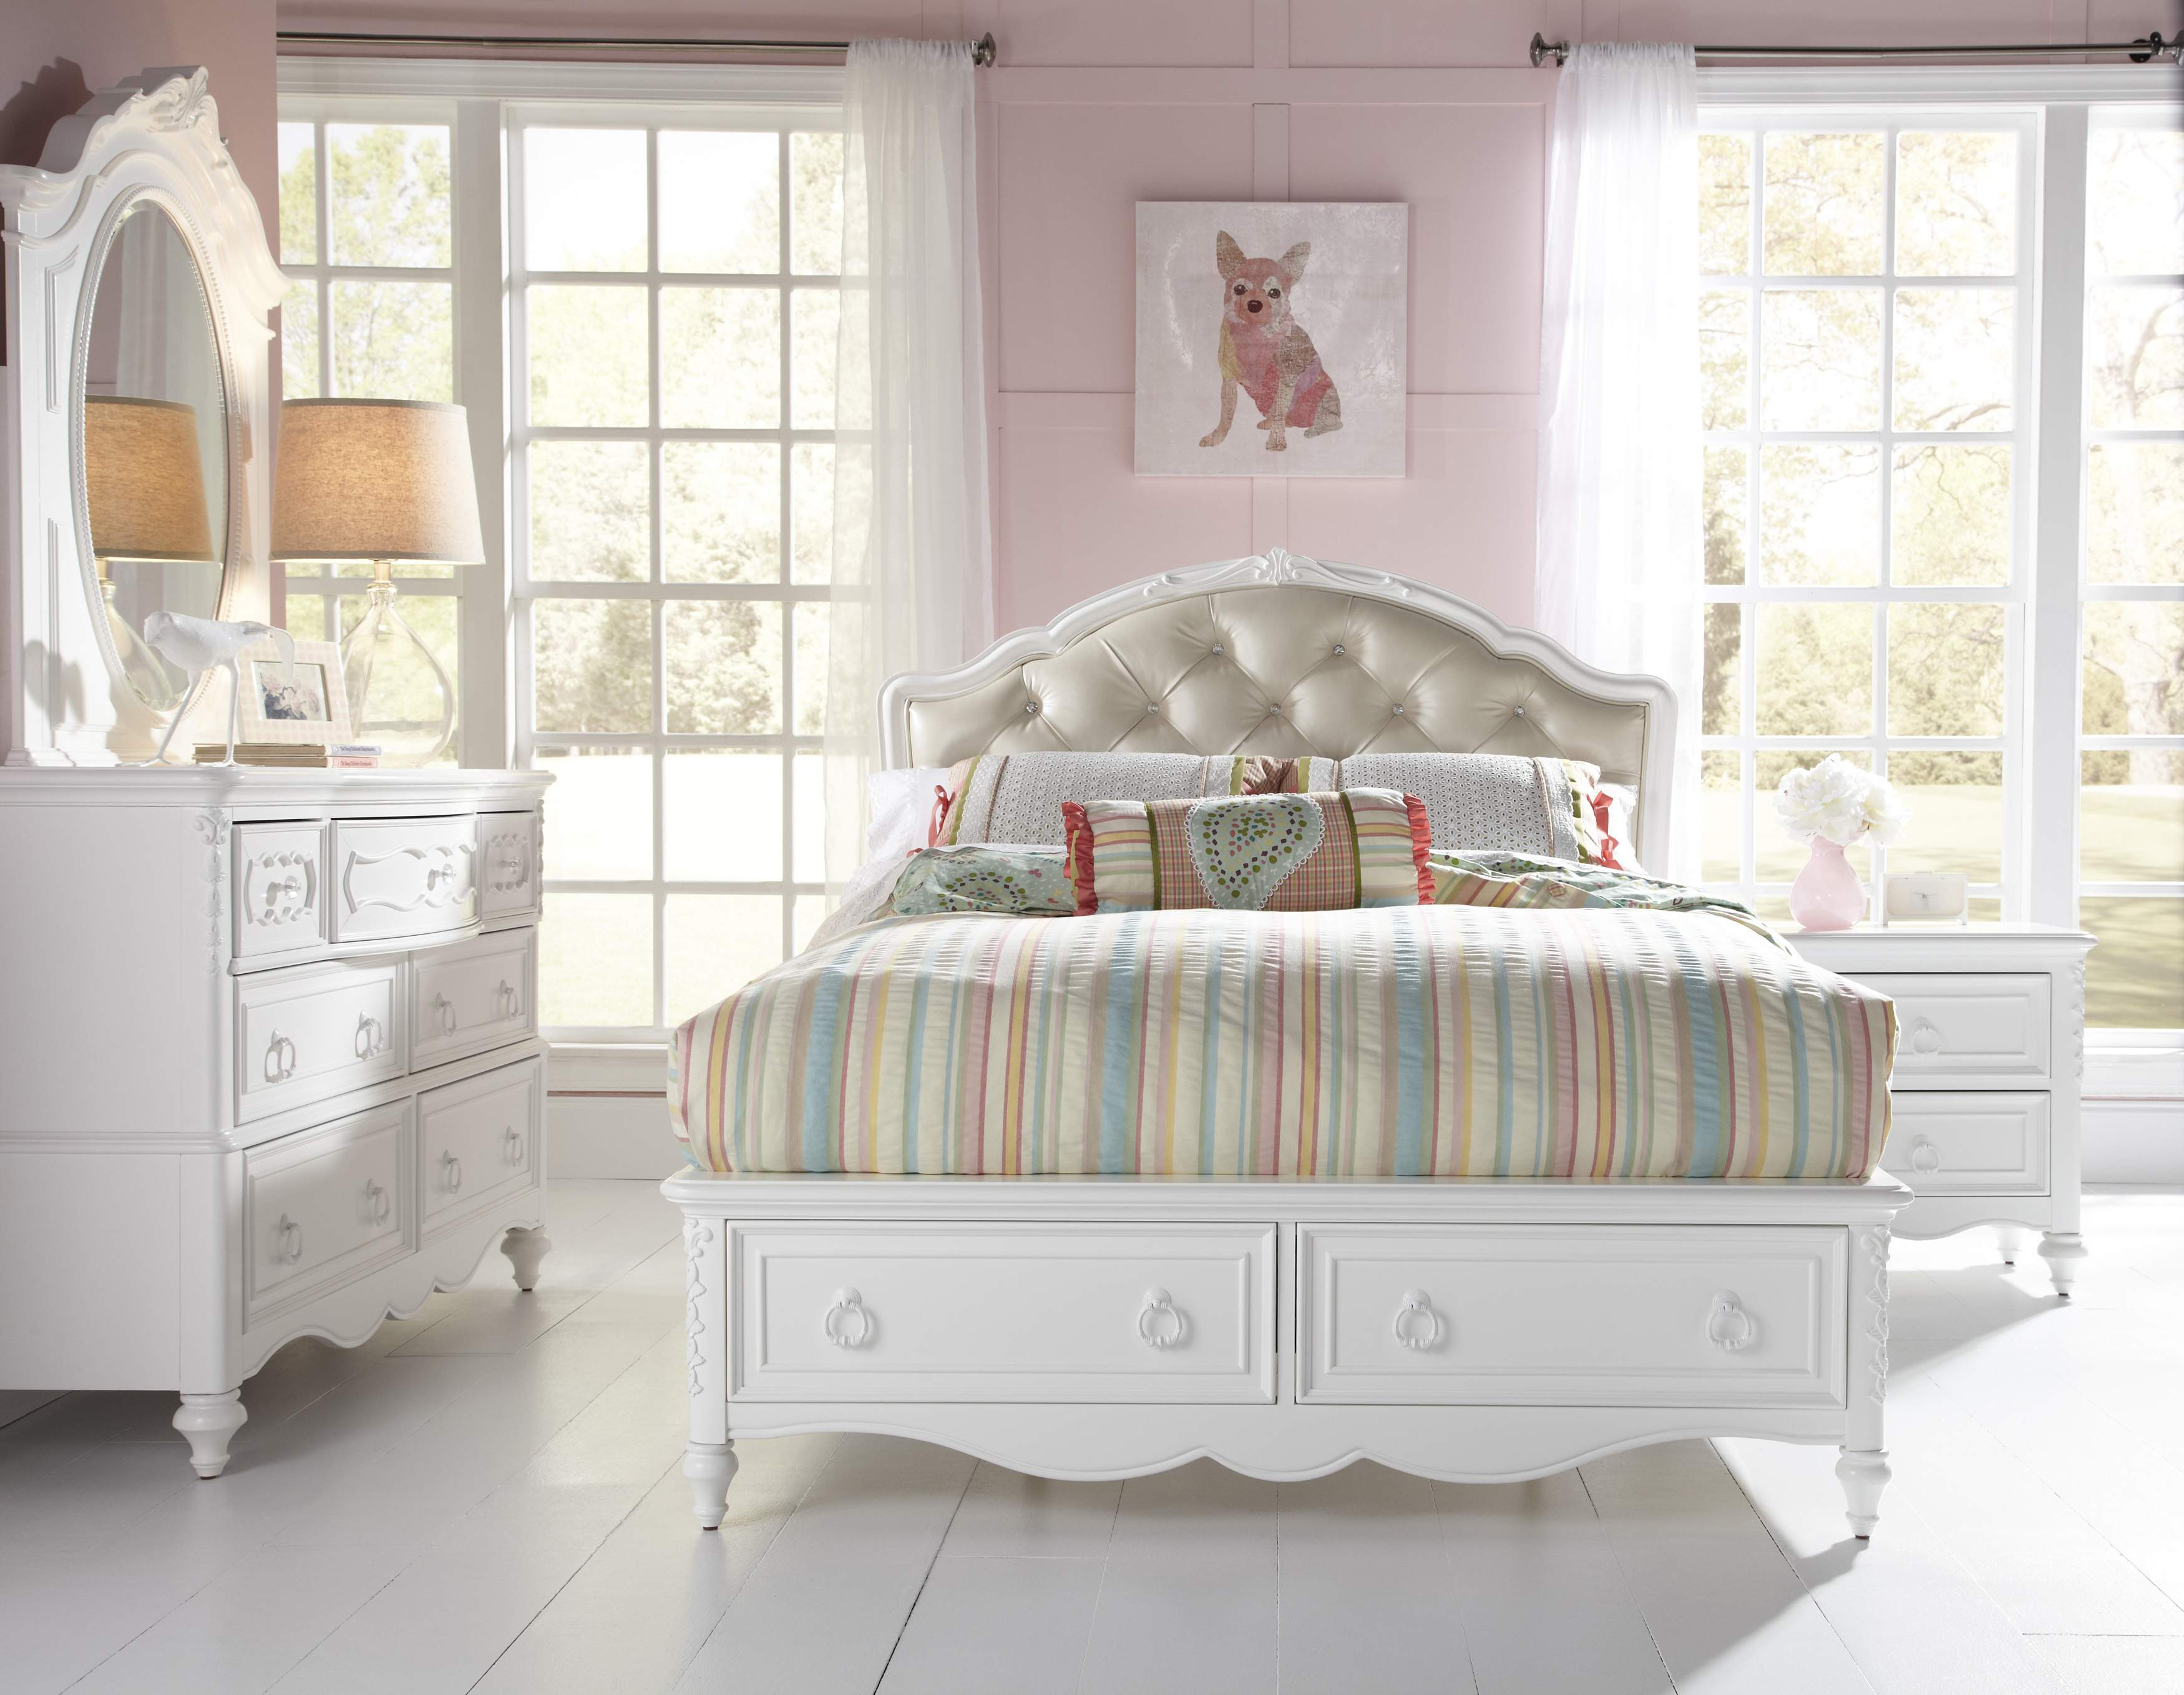 Teenage Child Girls Bedroom Set By Samuel Lawrence In Long Island,Room Clothes Organizer Ideas